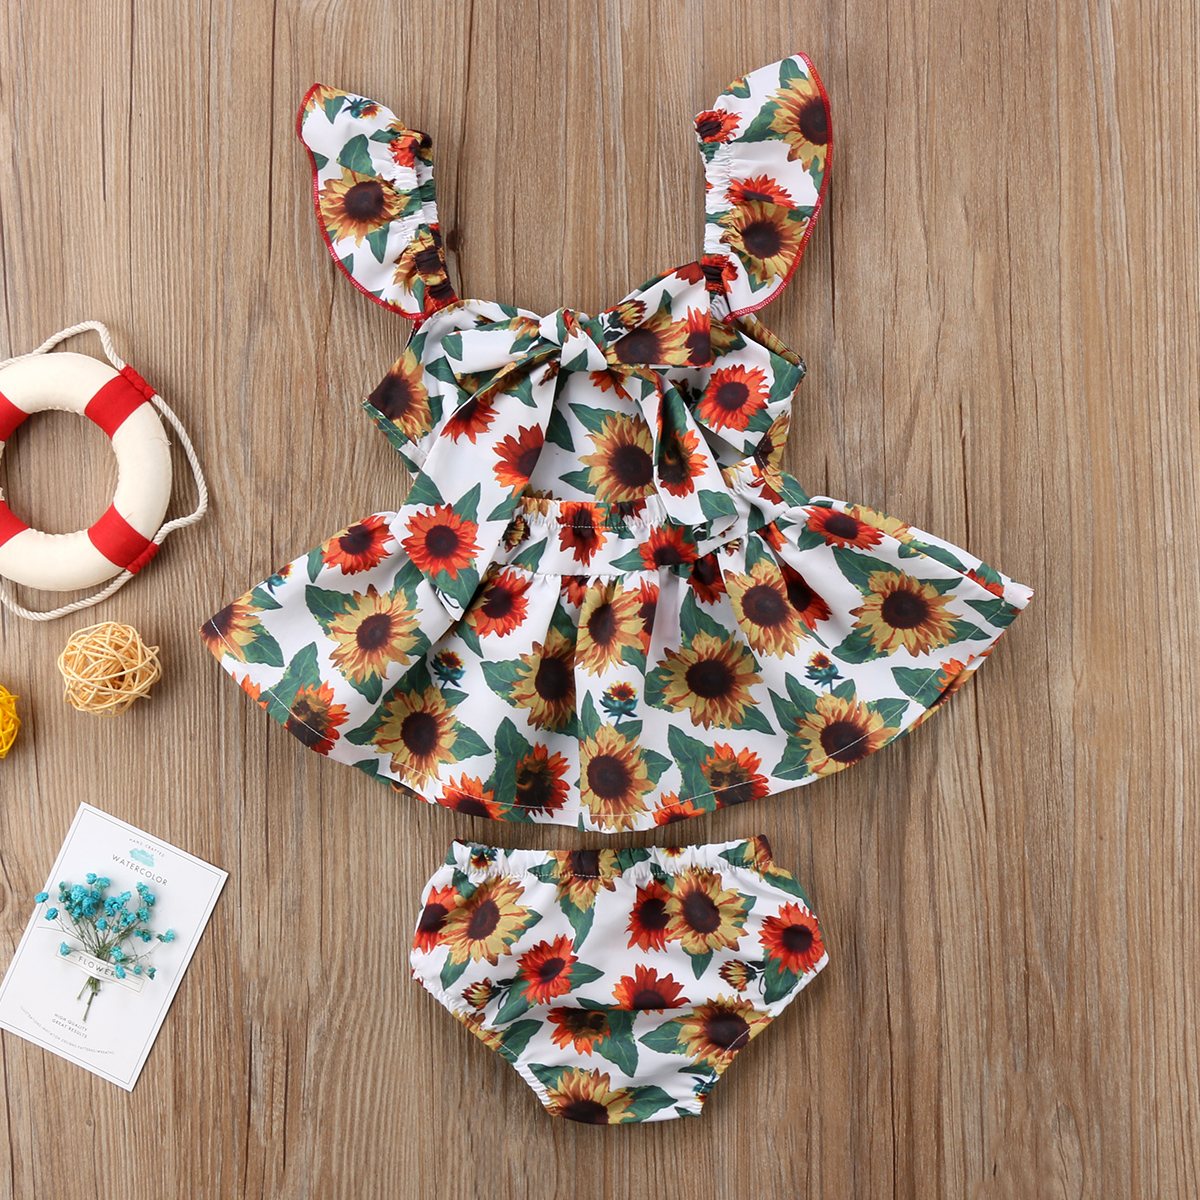 Newborn Infant Baby Girl Kid Summer Backless Flower Dress Bottoms 2 Pcs Clothing Set Clothes Outfit 2019 in Clothing Sets from Mother Kids